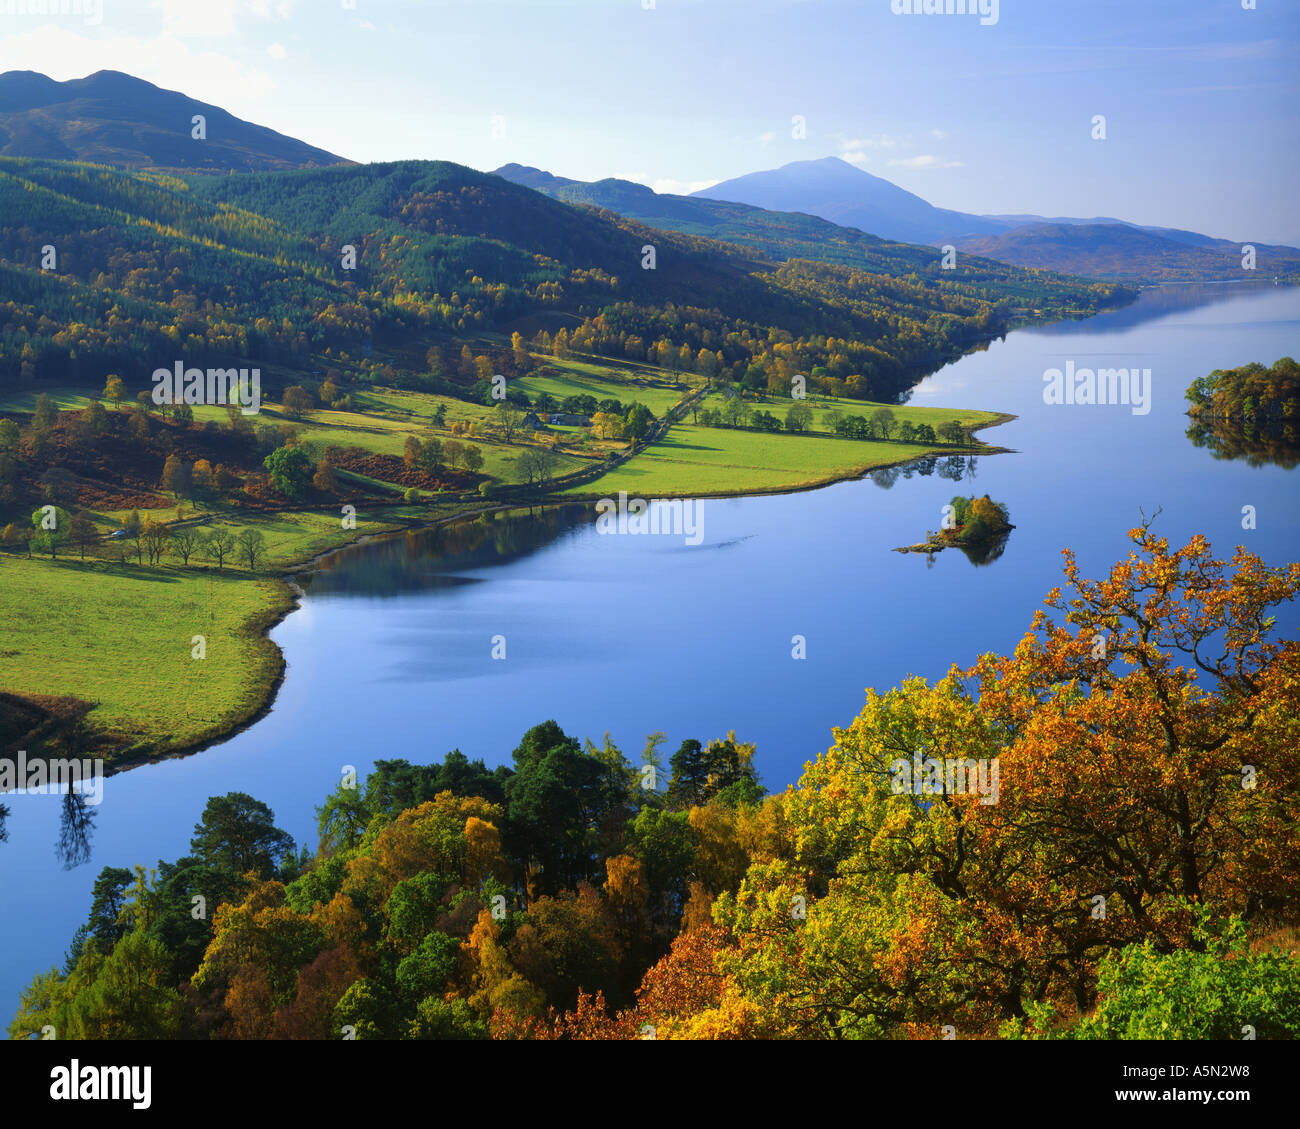 Fr - Scotland : Loch Tummel de Queen's View à Tayside Photo Stock